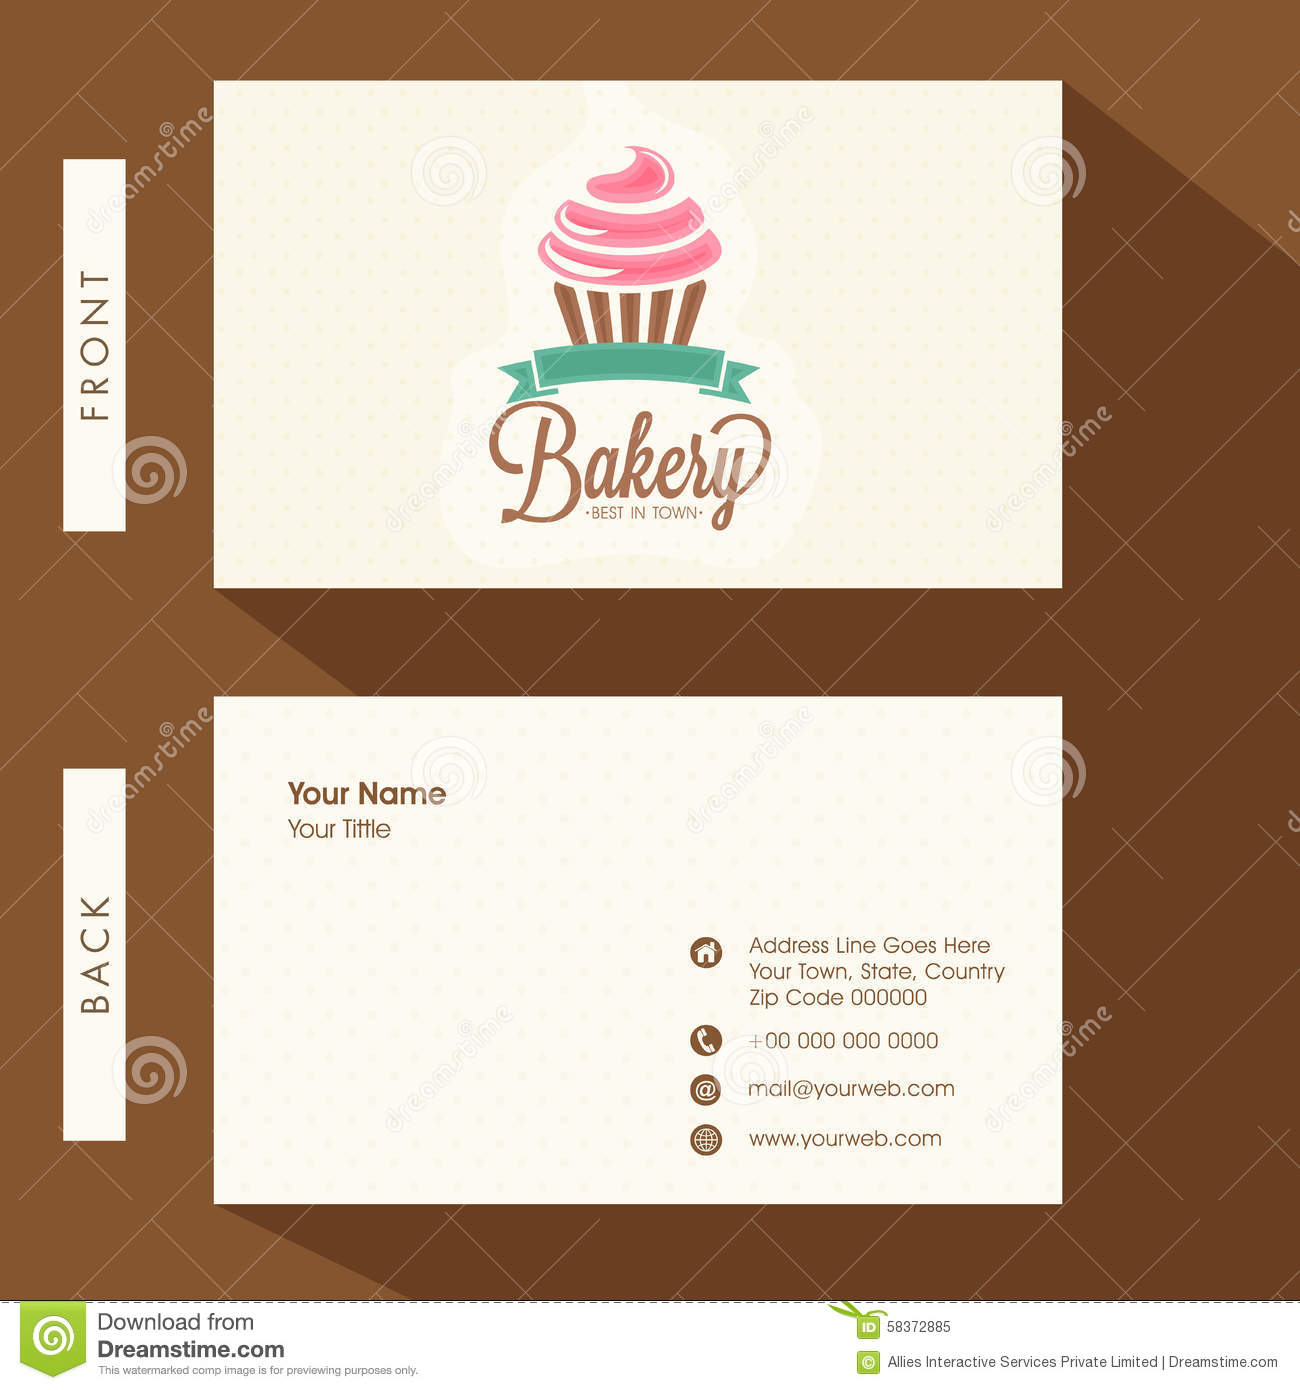 Business Card For Bakery. Stock Illustration - Image: 58372885